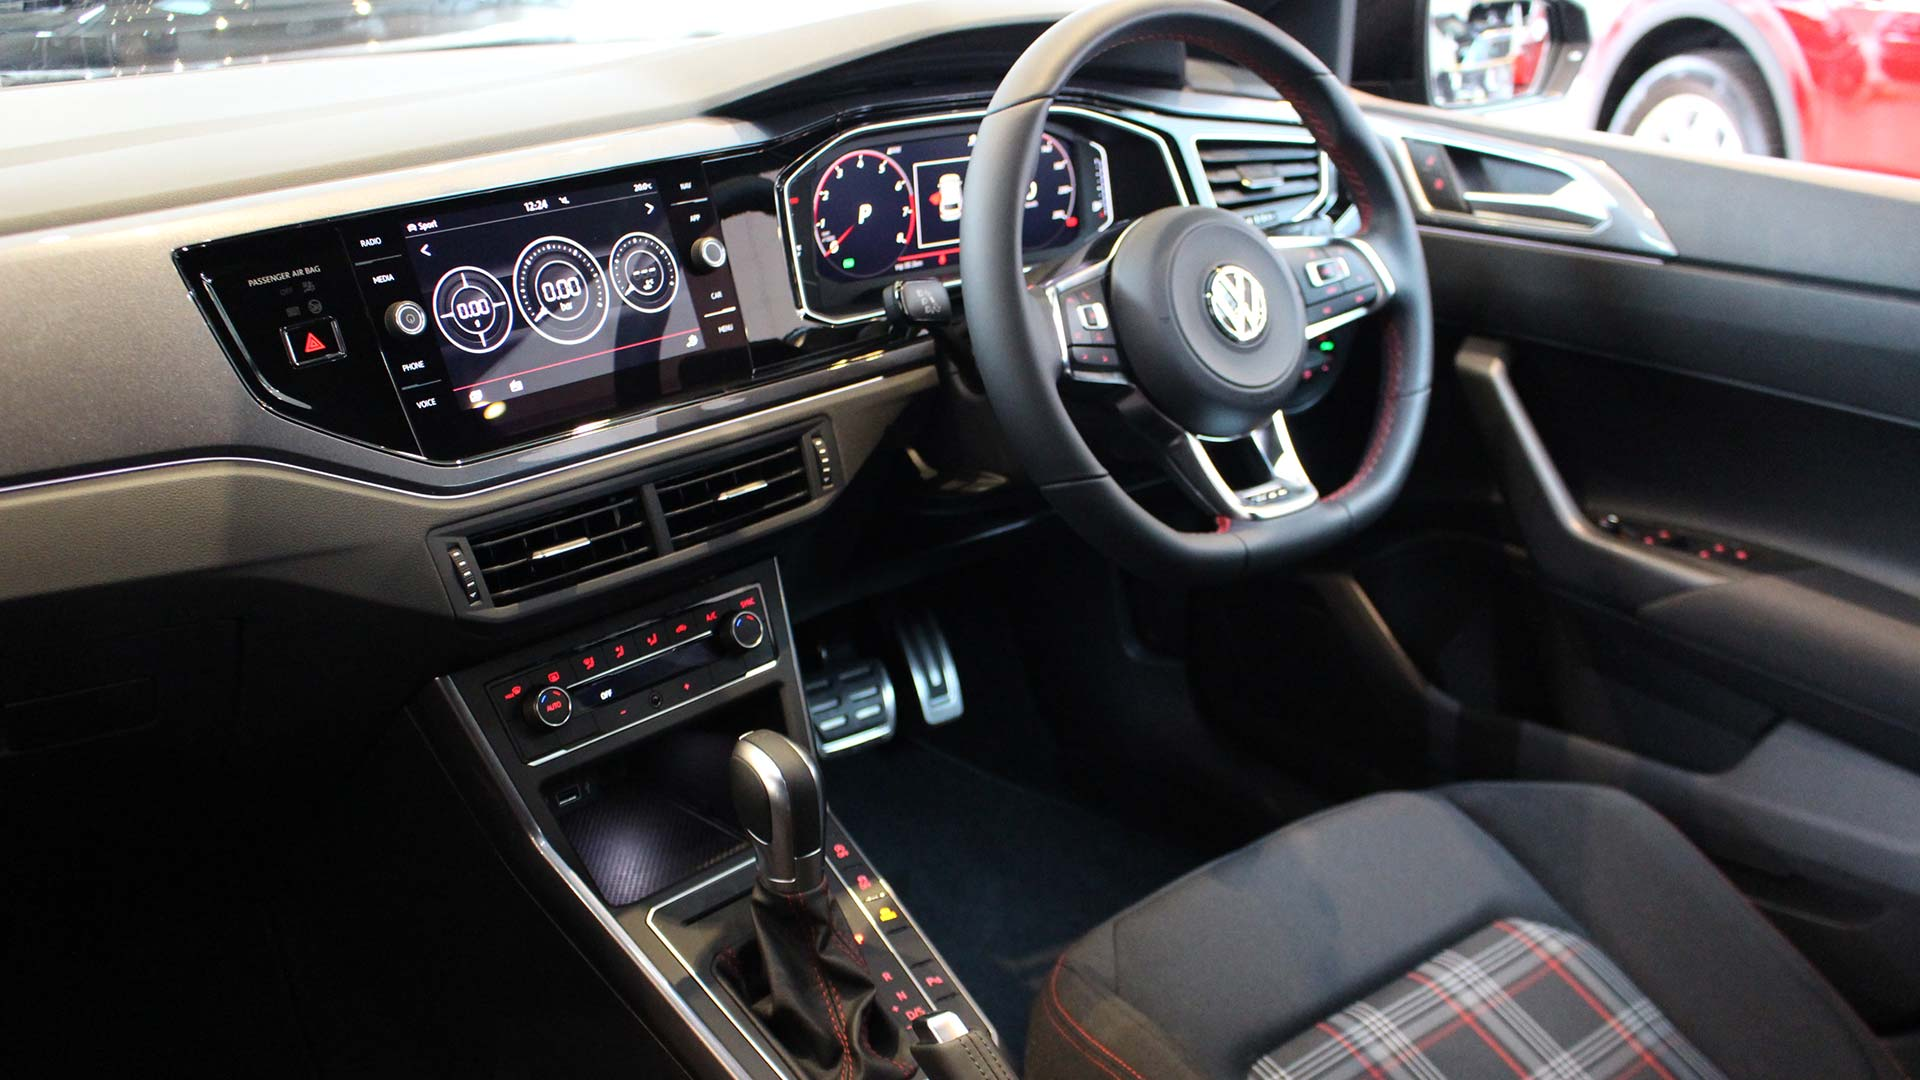 Volkswagen Polo GTI's interior, now with Active Info Display